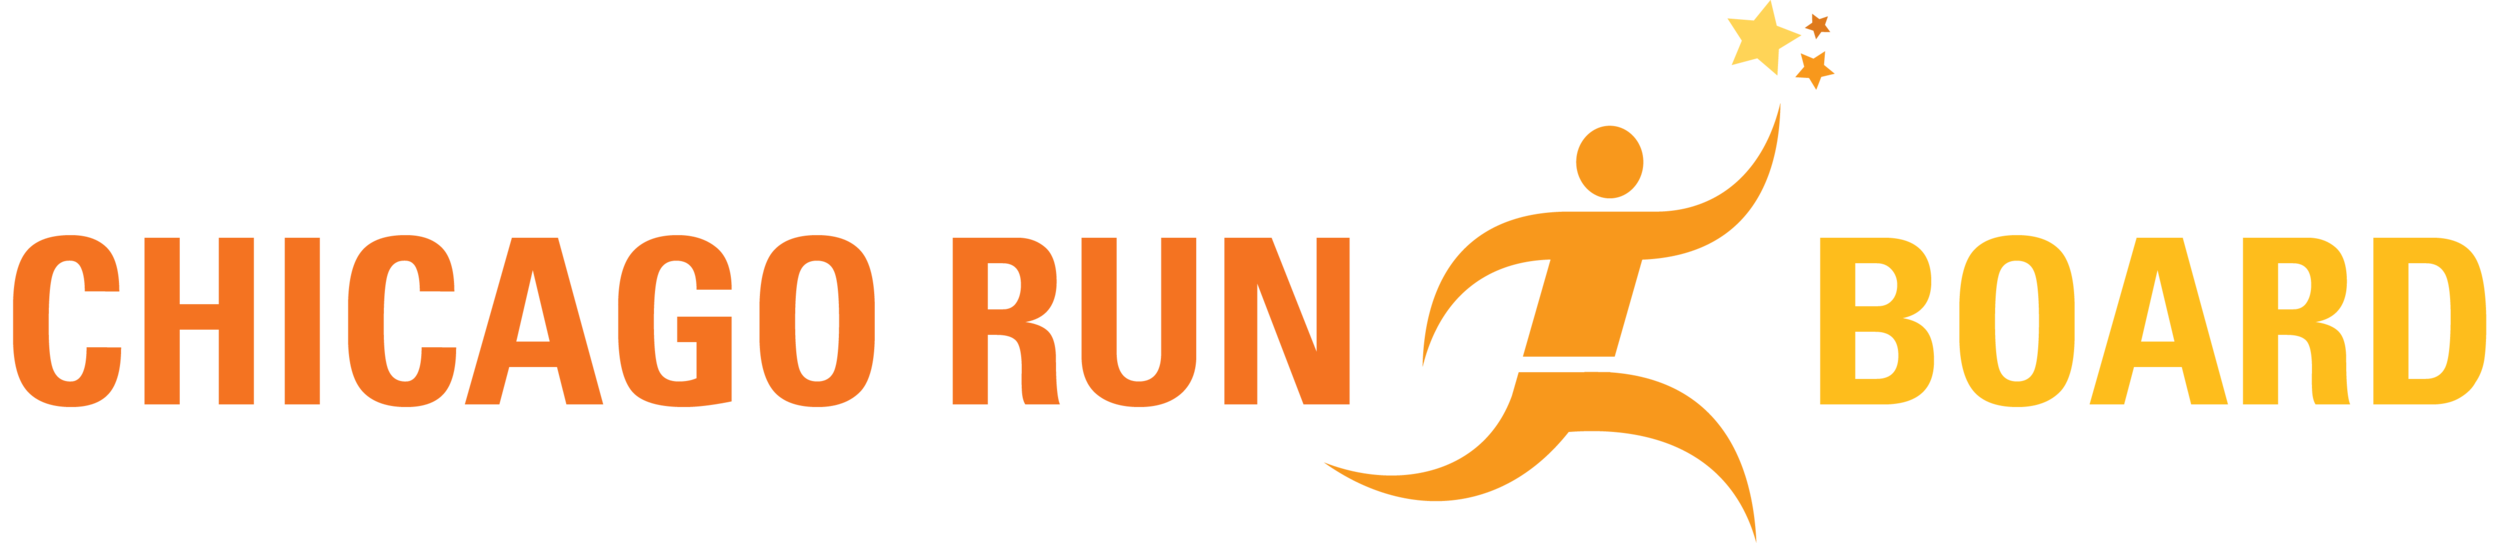 Chicago Run Banner - board.png